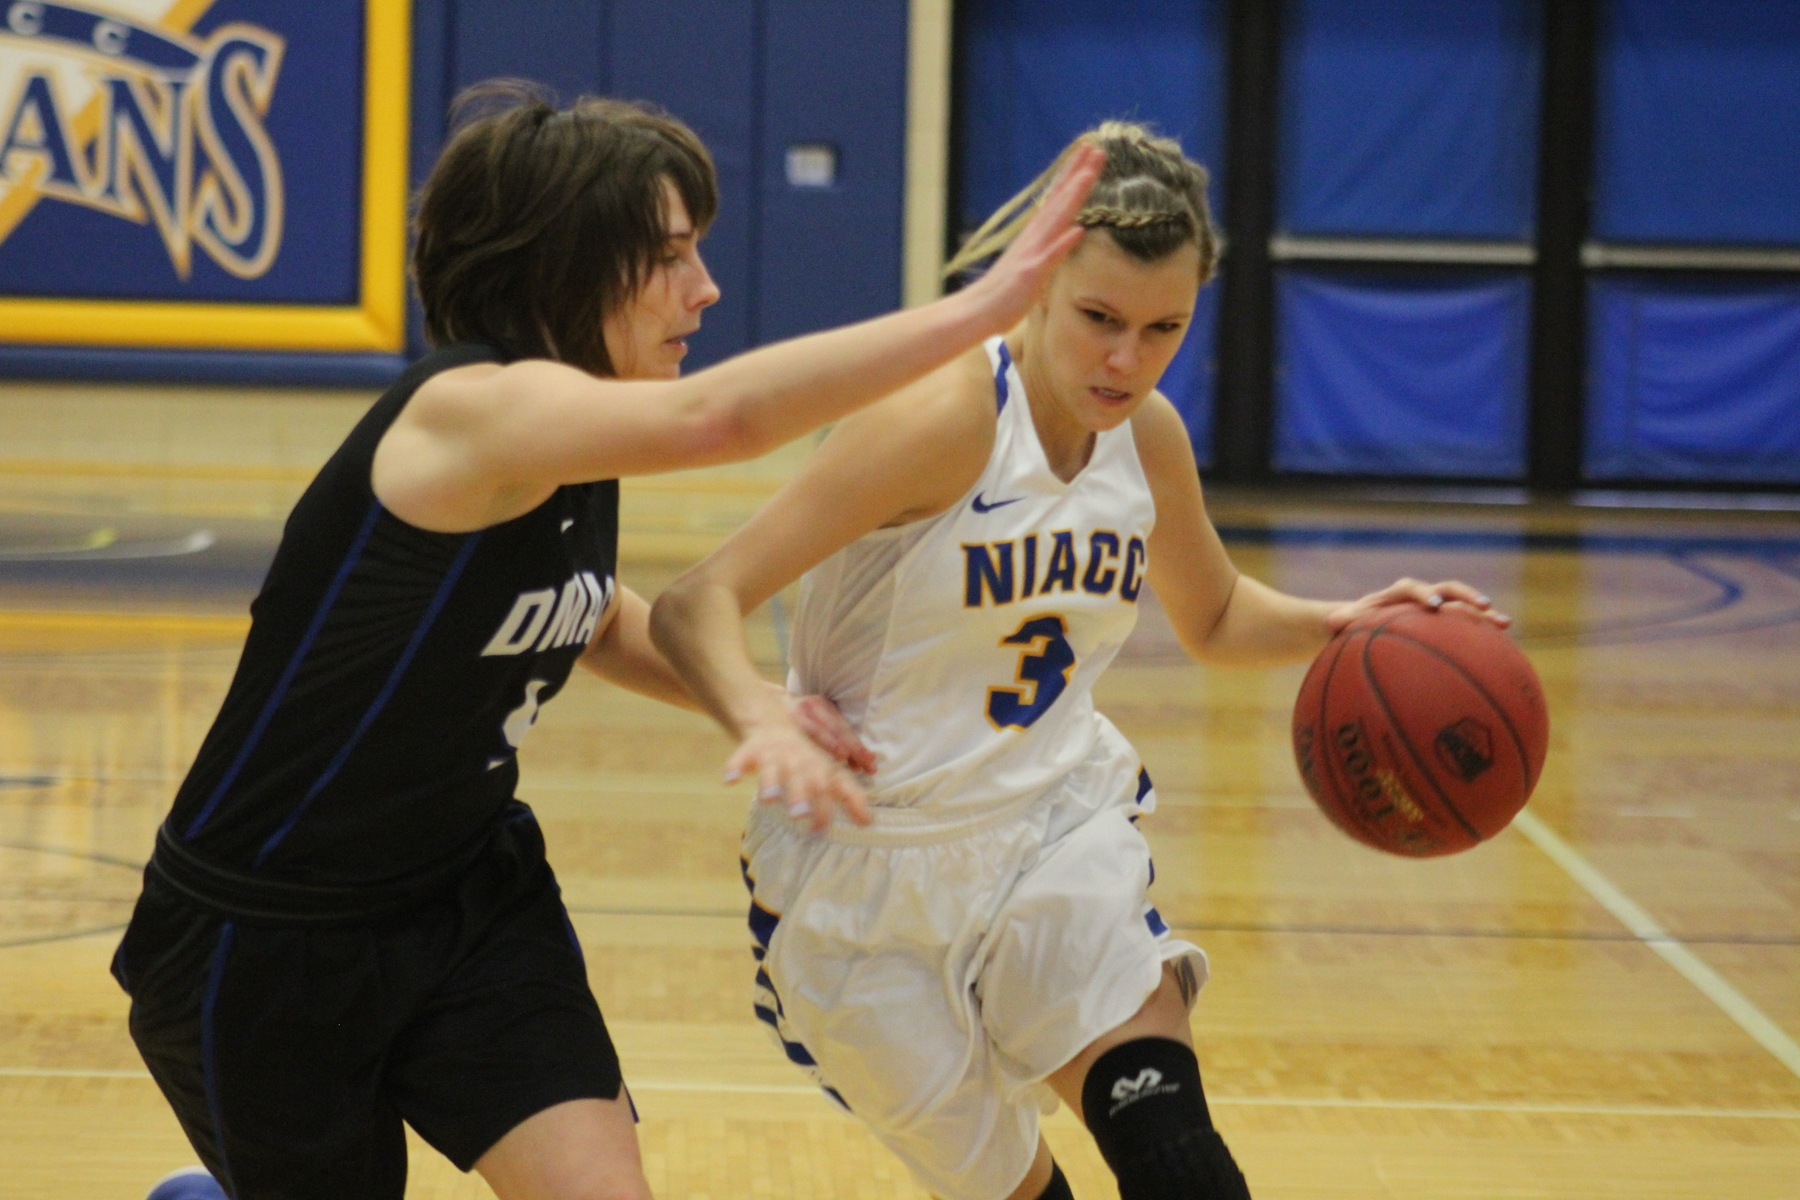 NIACC's Taylor Laabs drives to the basket in Saturday's game against DMACC.